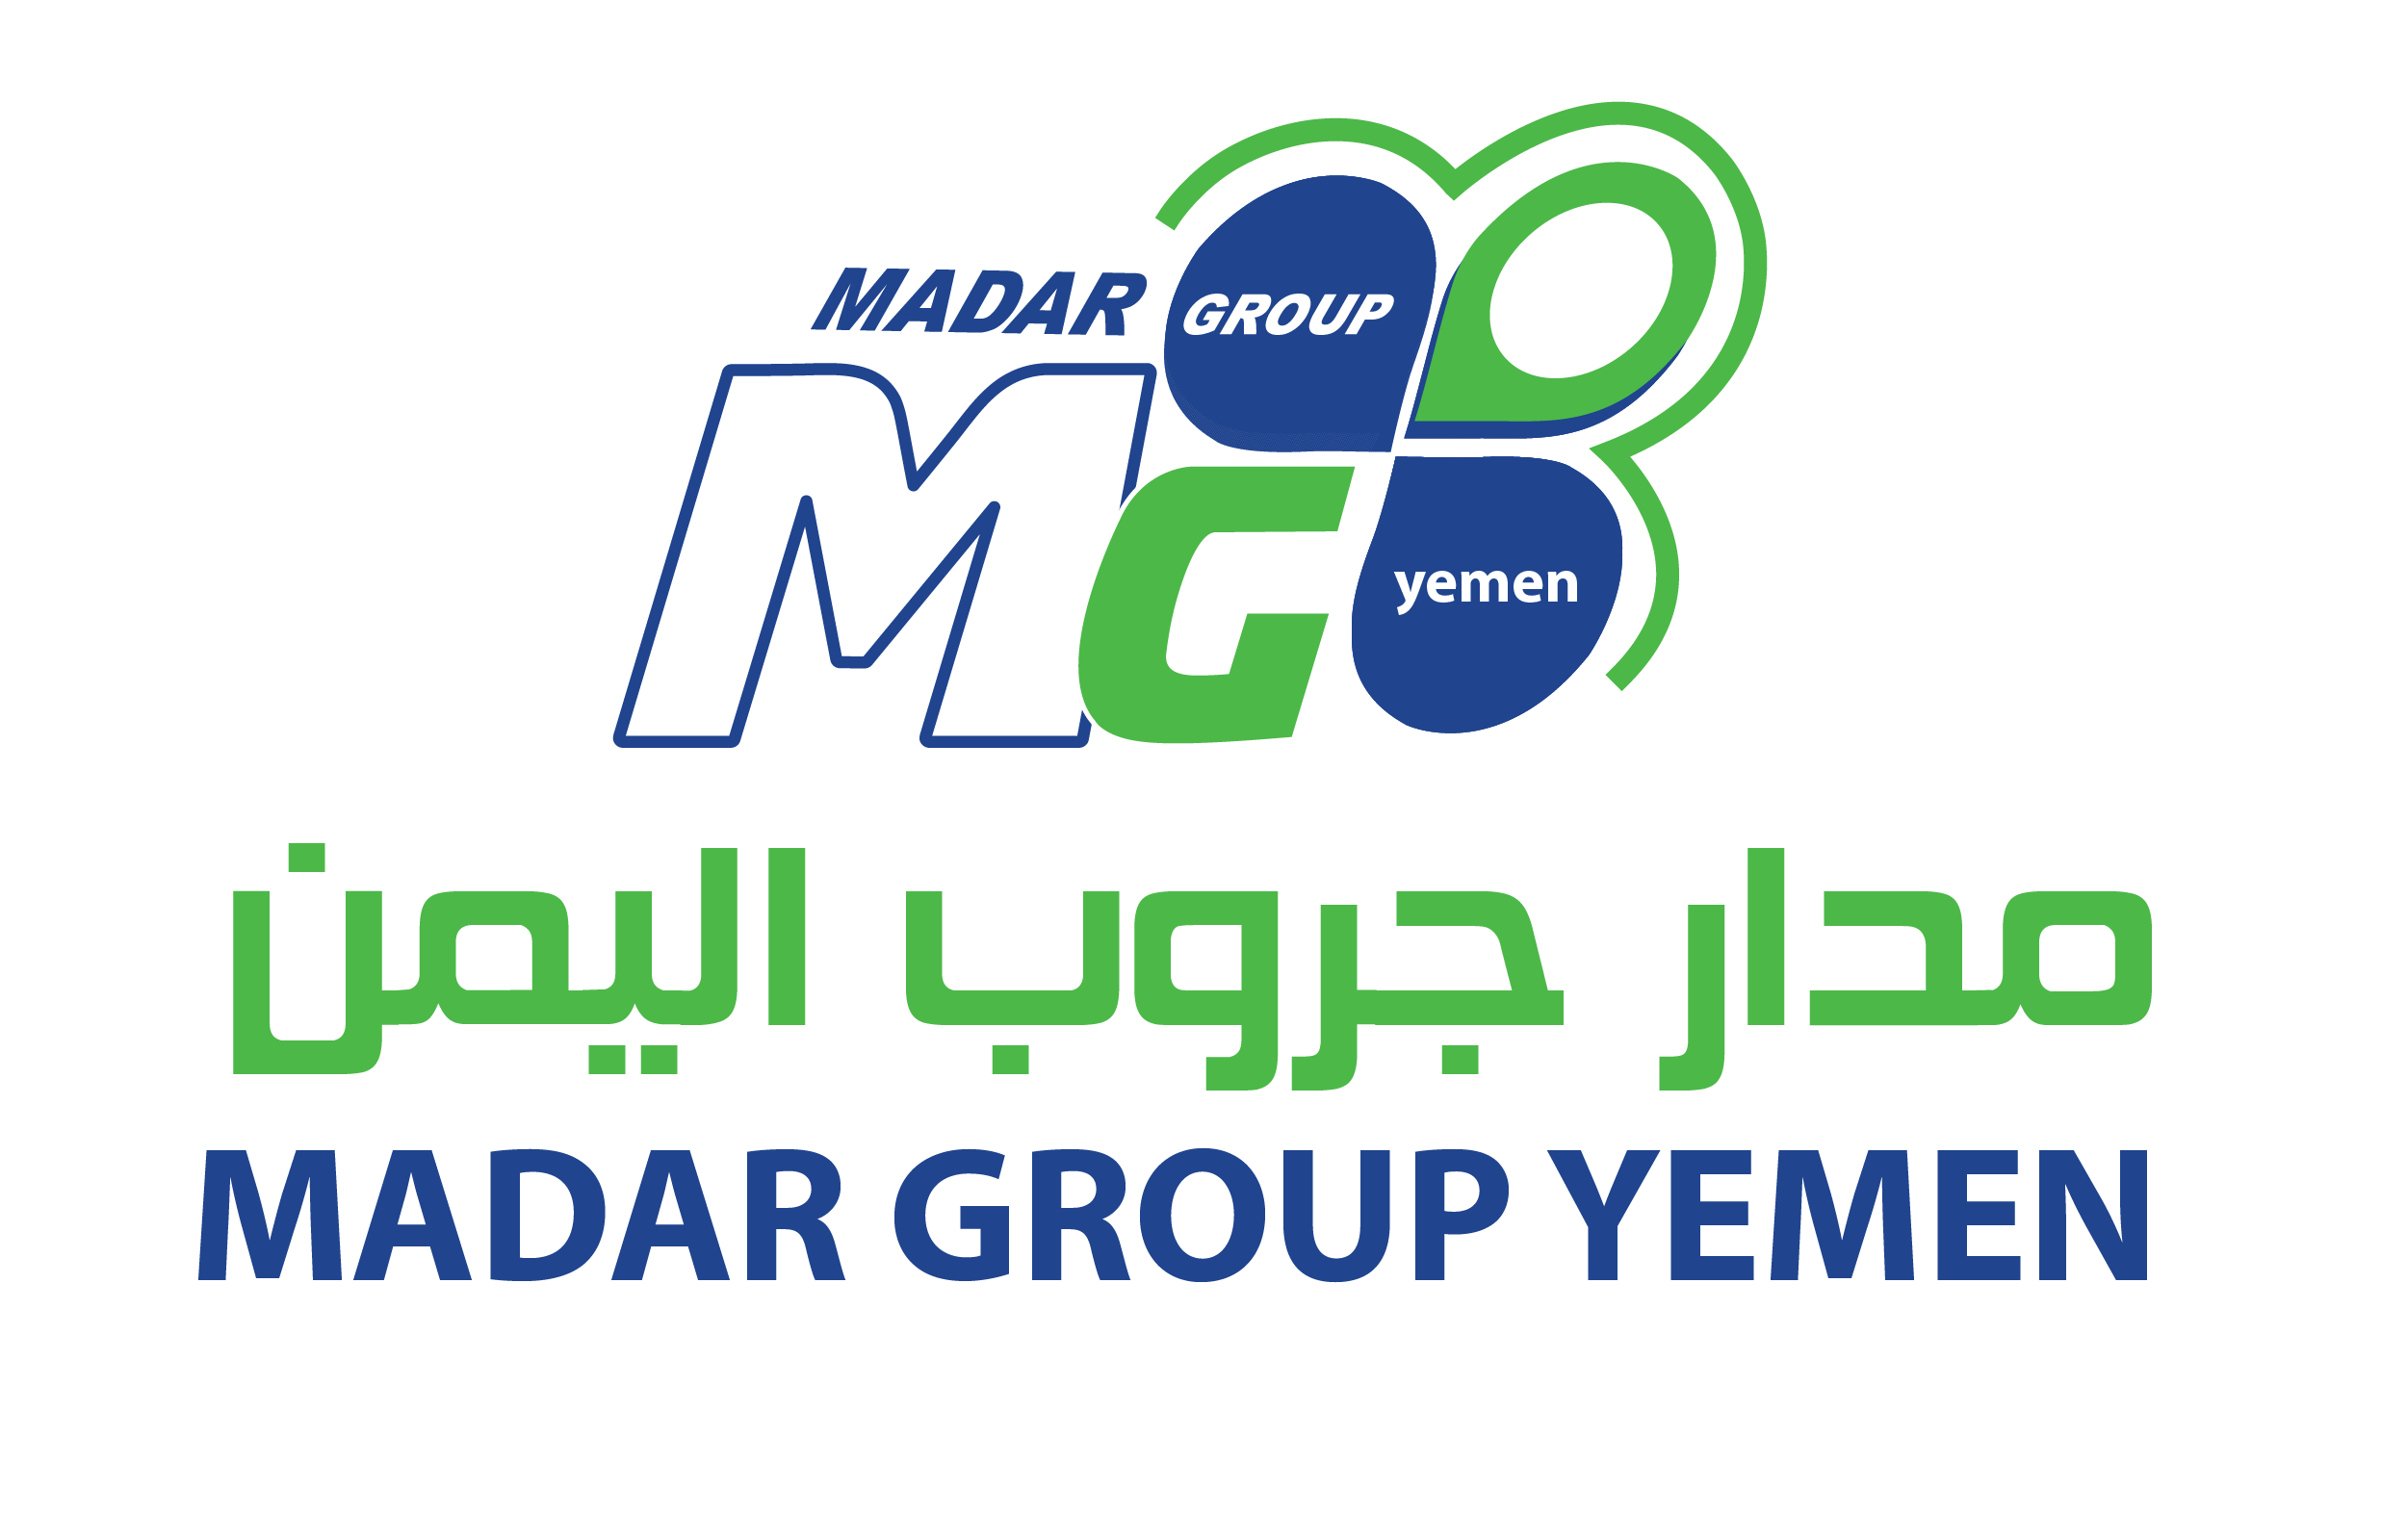 Madar Group Yemen, One of our leading group companies in the middle east